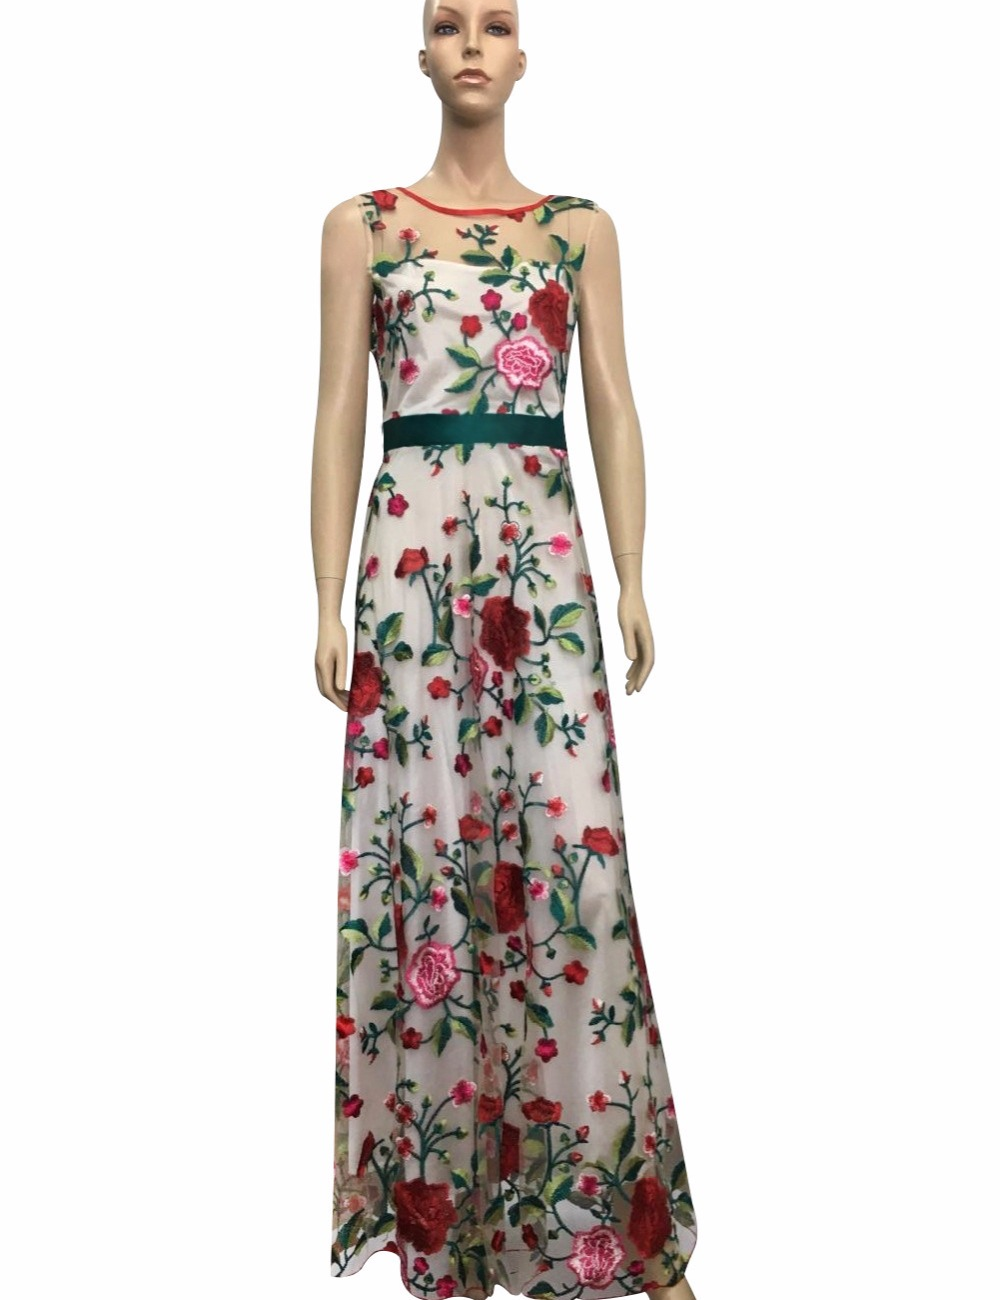 2018 nouvelle femme populaire sans manches robe broderie impression robe